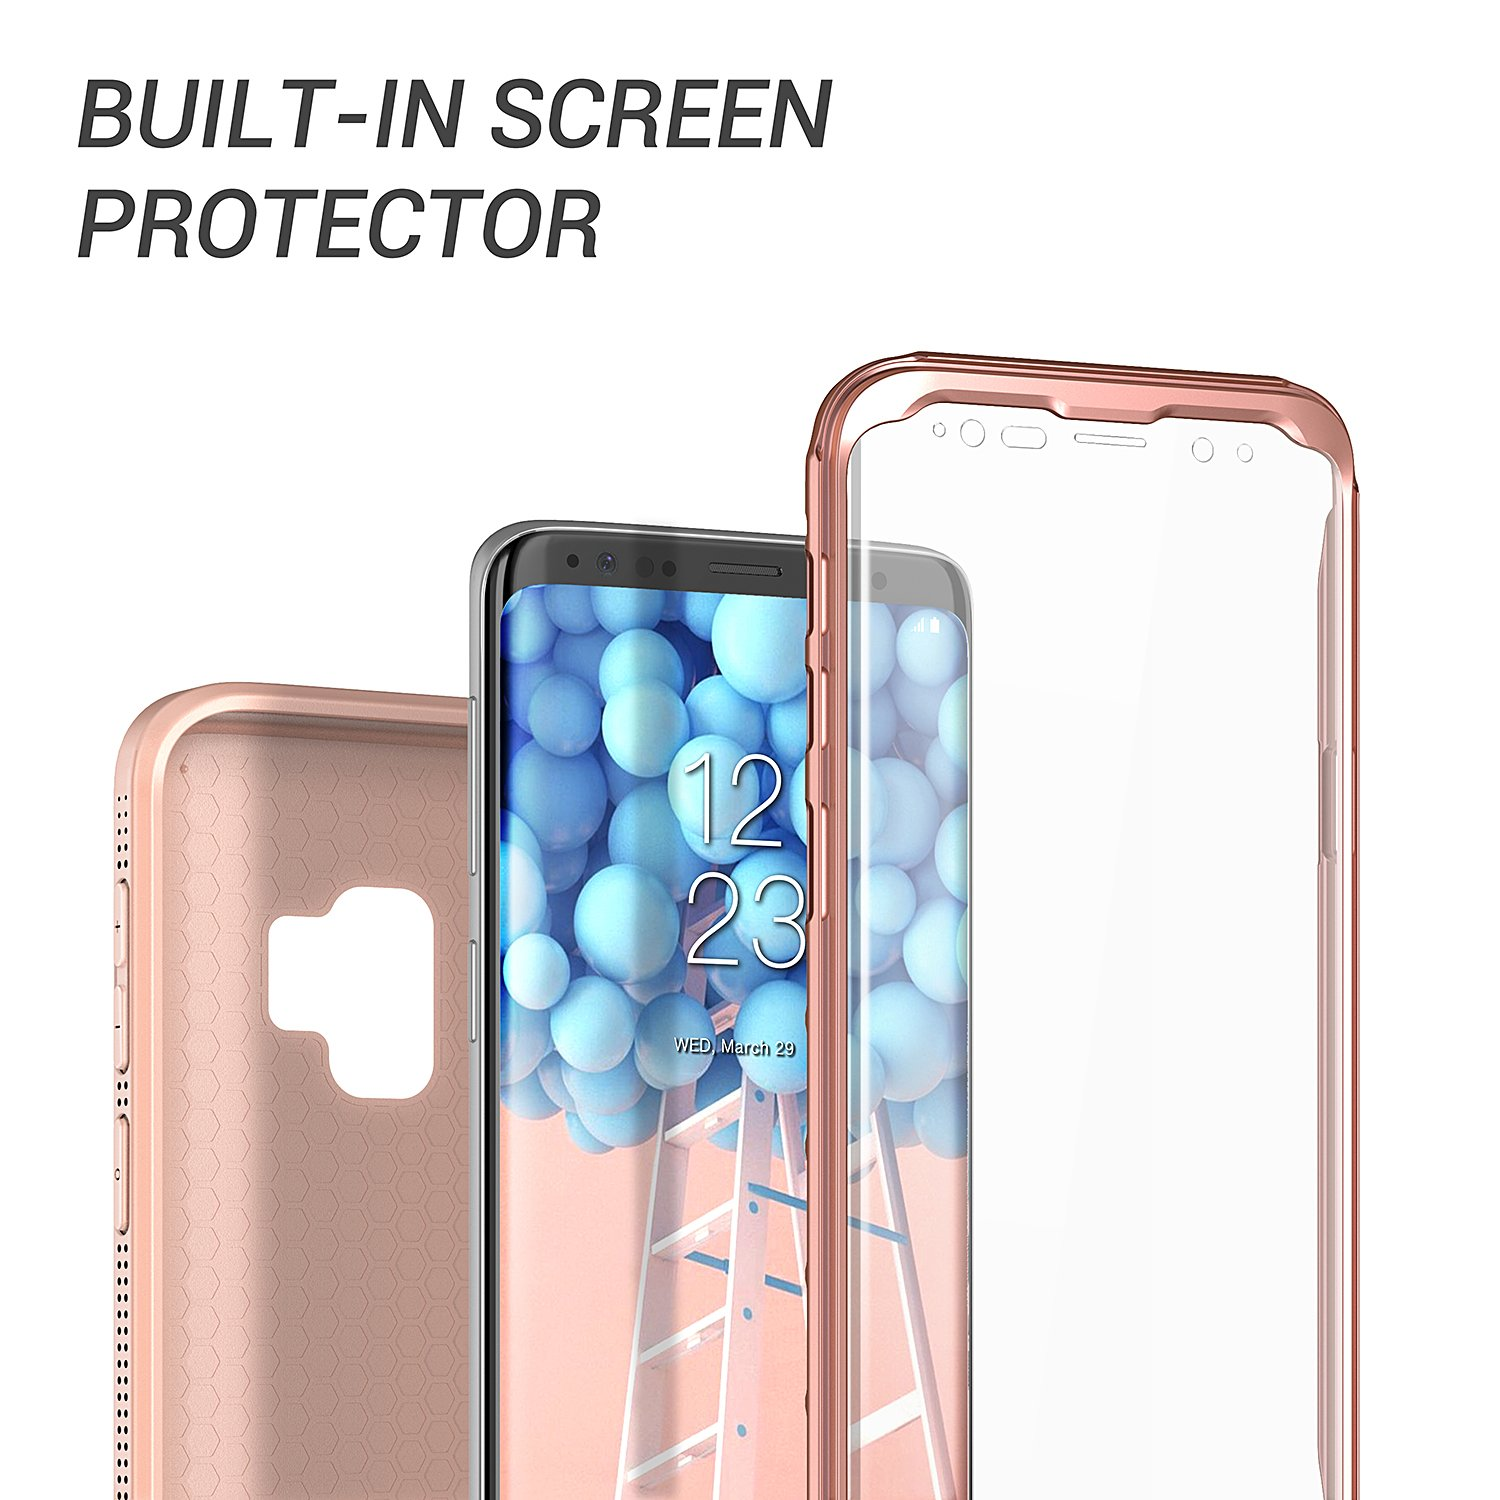 Galaxy S9 Case, YOUMAKER Rose Gold with Built-in Screen Protector Heavy Duty Protection Shockproof Slim Fit Full Body Case Cover for Samsung Galaxy S9 5.8 inch (2018) - Rose Gold/Pink by YOUMAKER (Image #4)